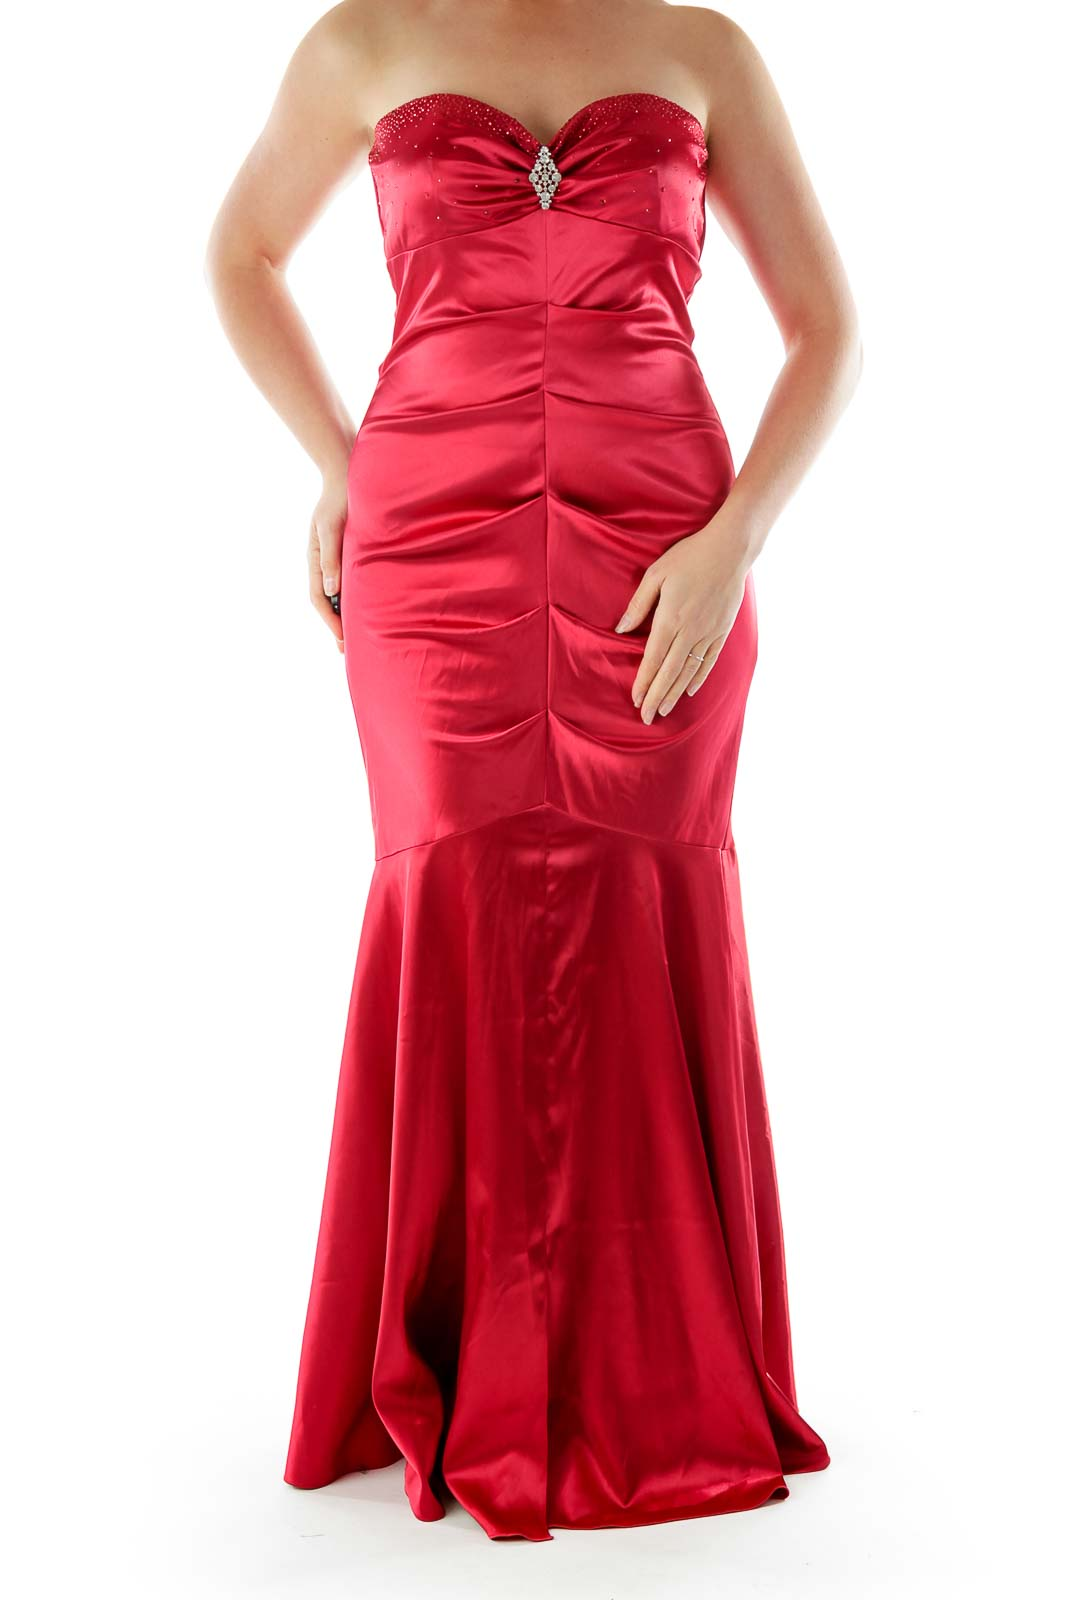 Red Evening Dress with Gem Stones Front